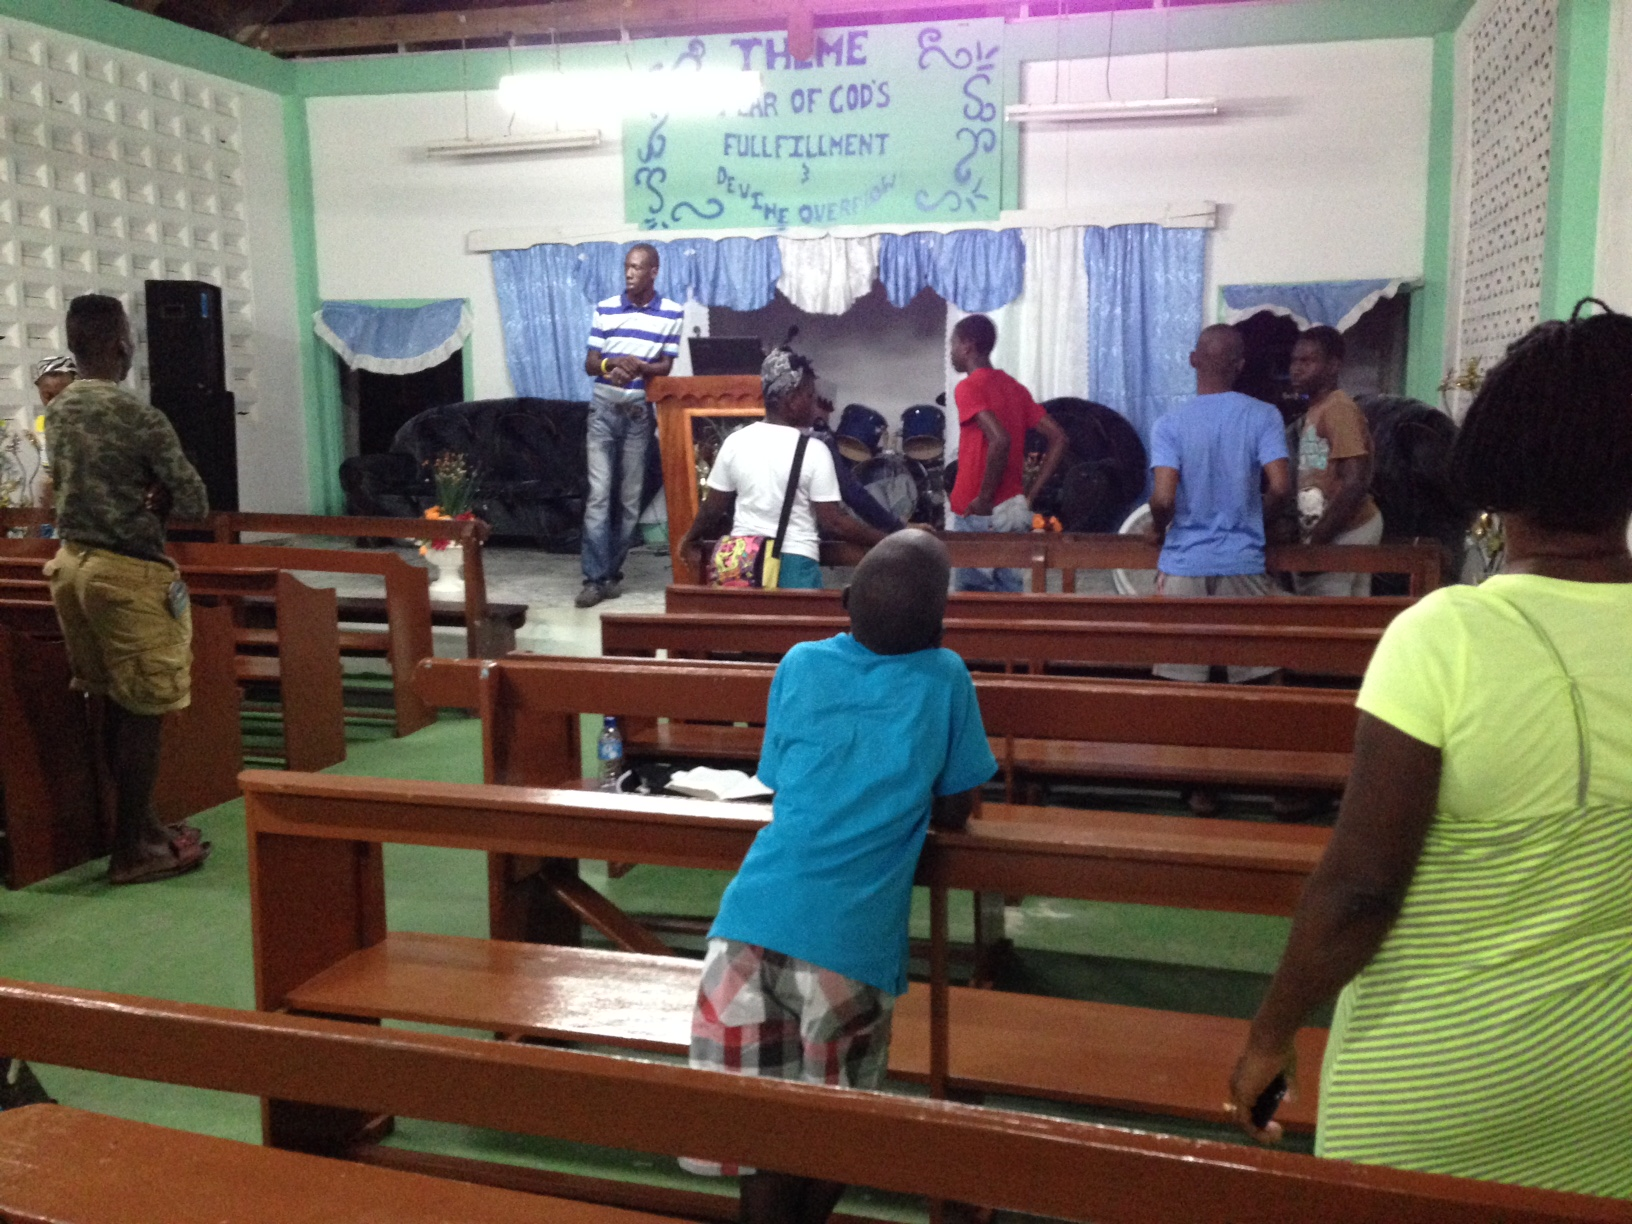 Give | Shiloh Church Of God 7th Day